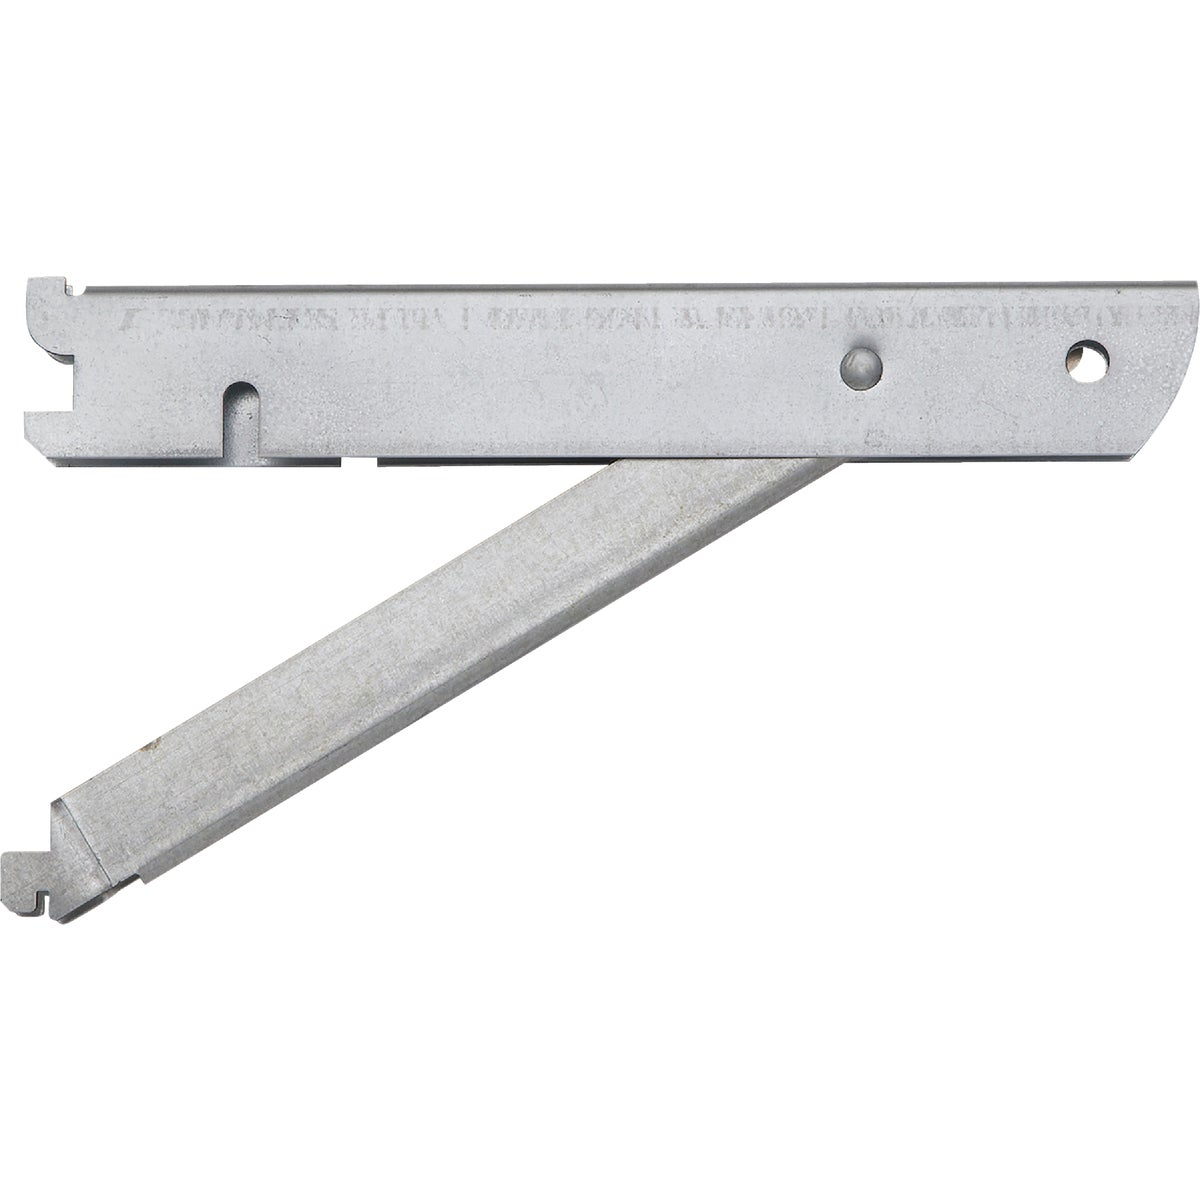 "10"" SUPPORT BRACKET - BK010311 by Knape & Vogt Mfg Co"